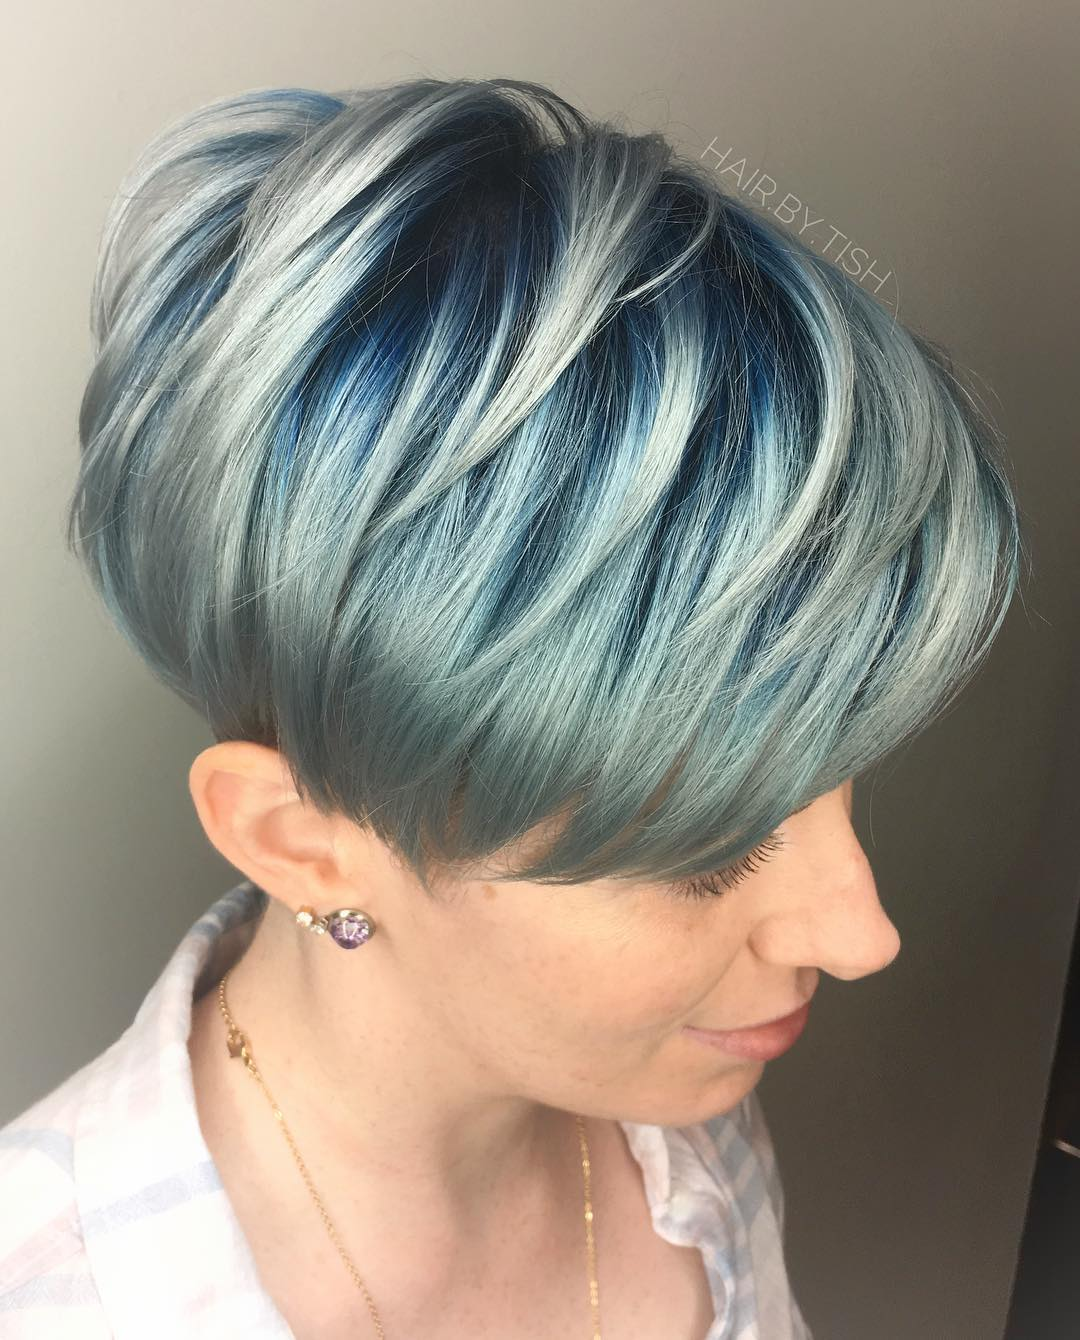 Short Hair Color for Female Fashion Fans - Woman Fashion Trends